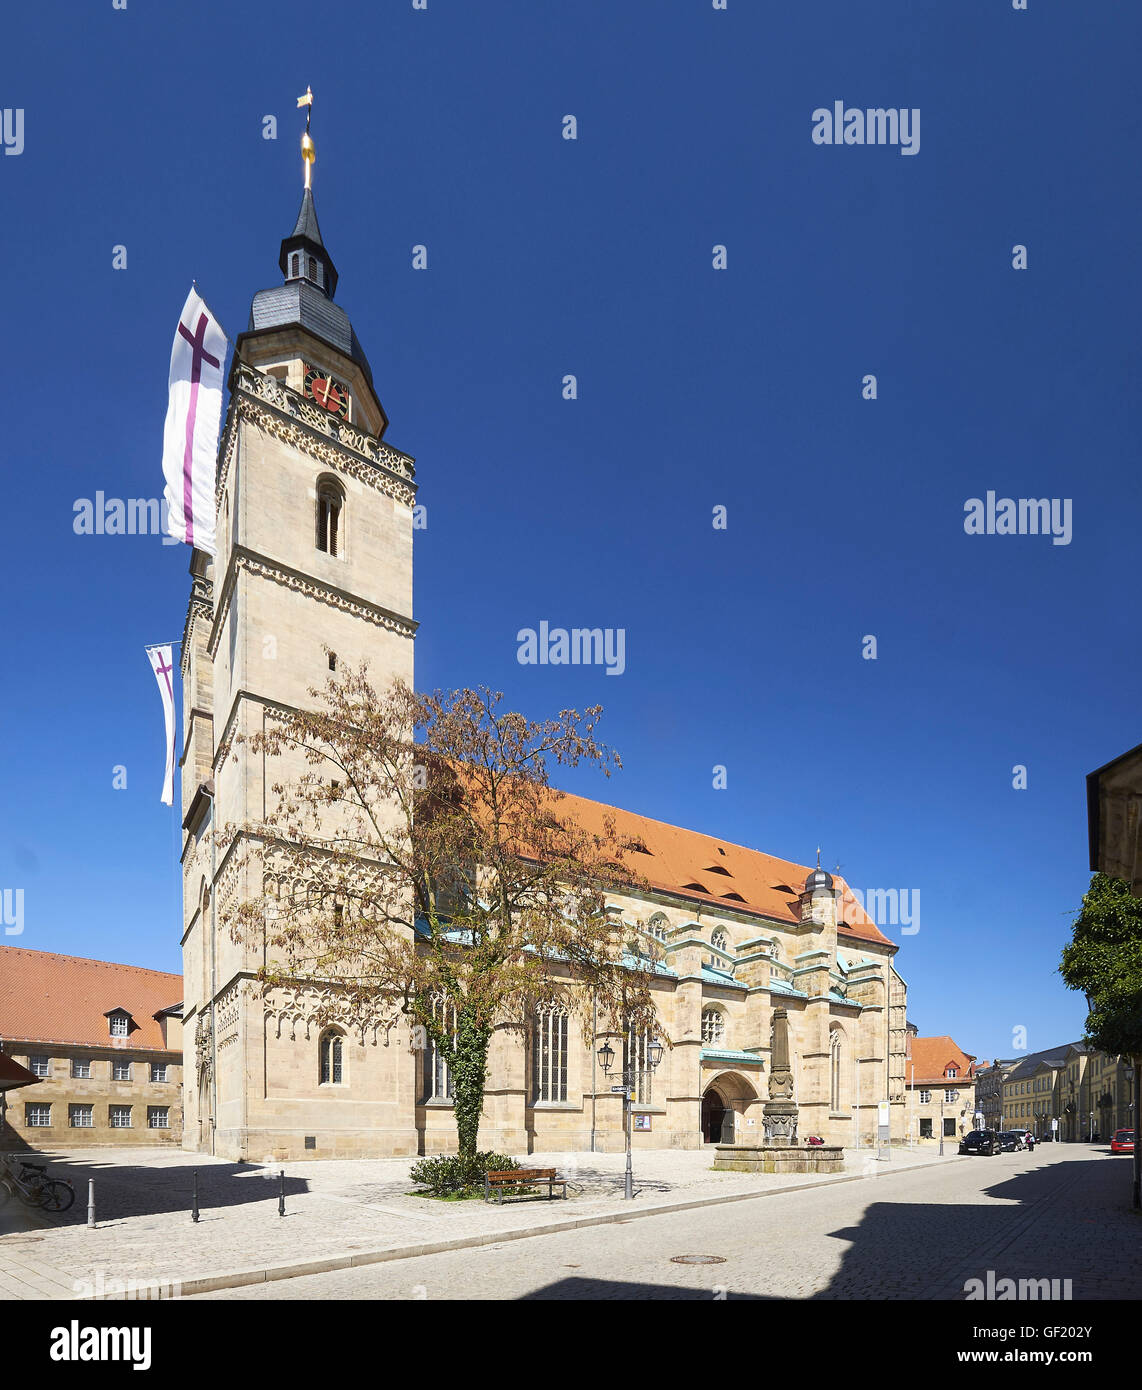 Church of the Holy Spirit, Bayreuth, Germany - Stock Image